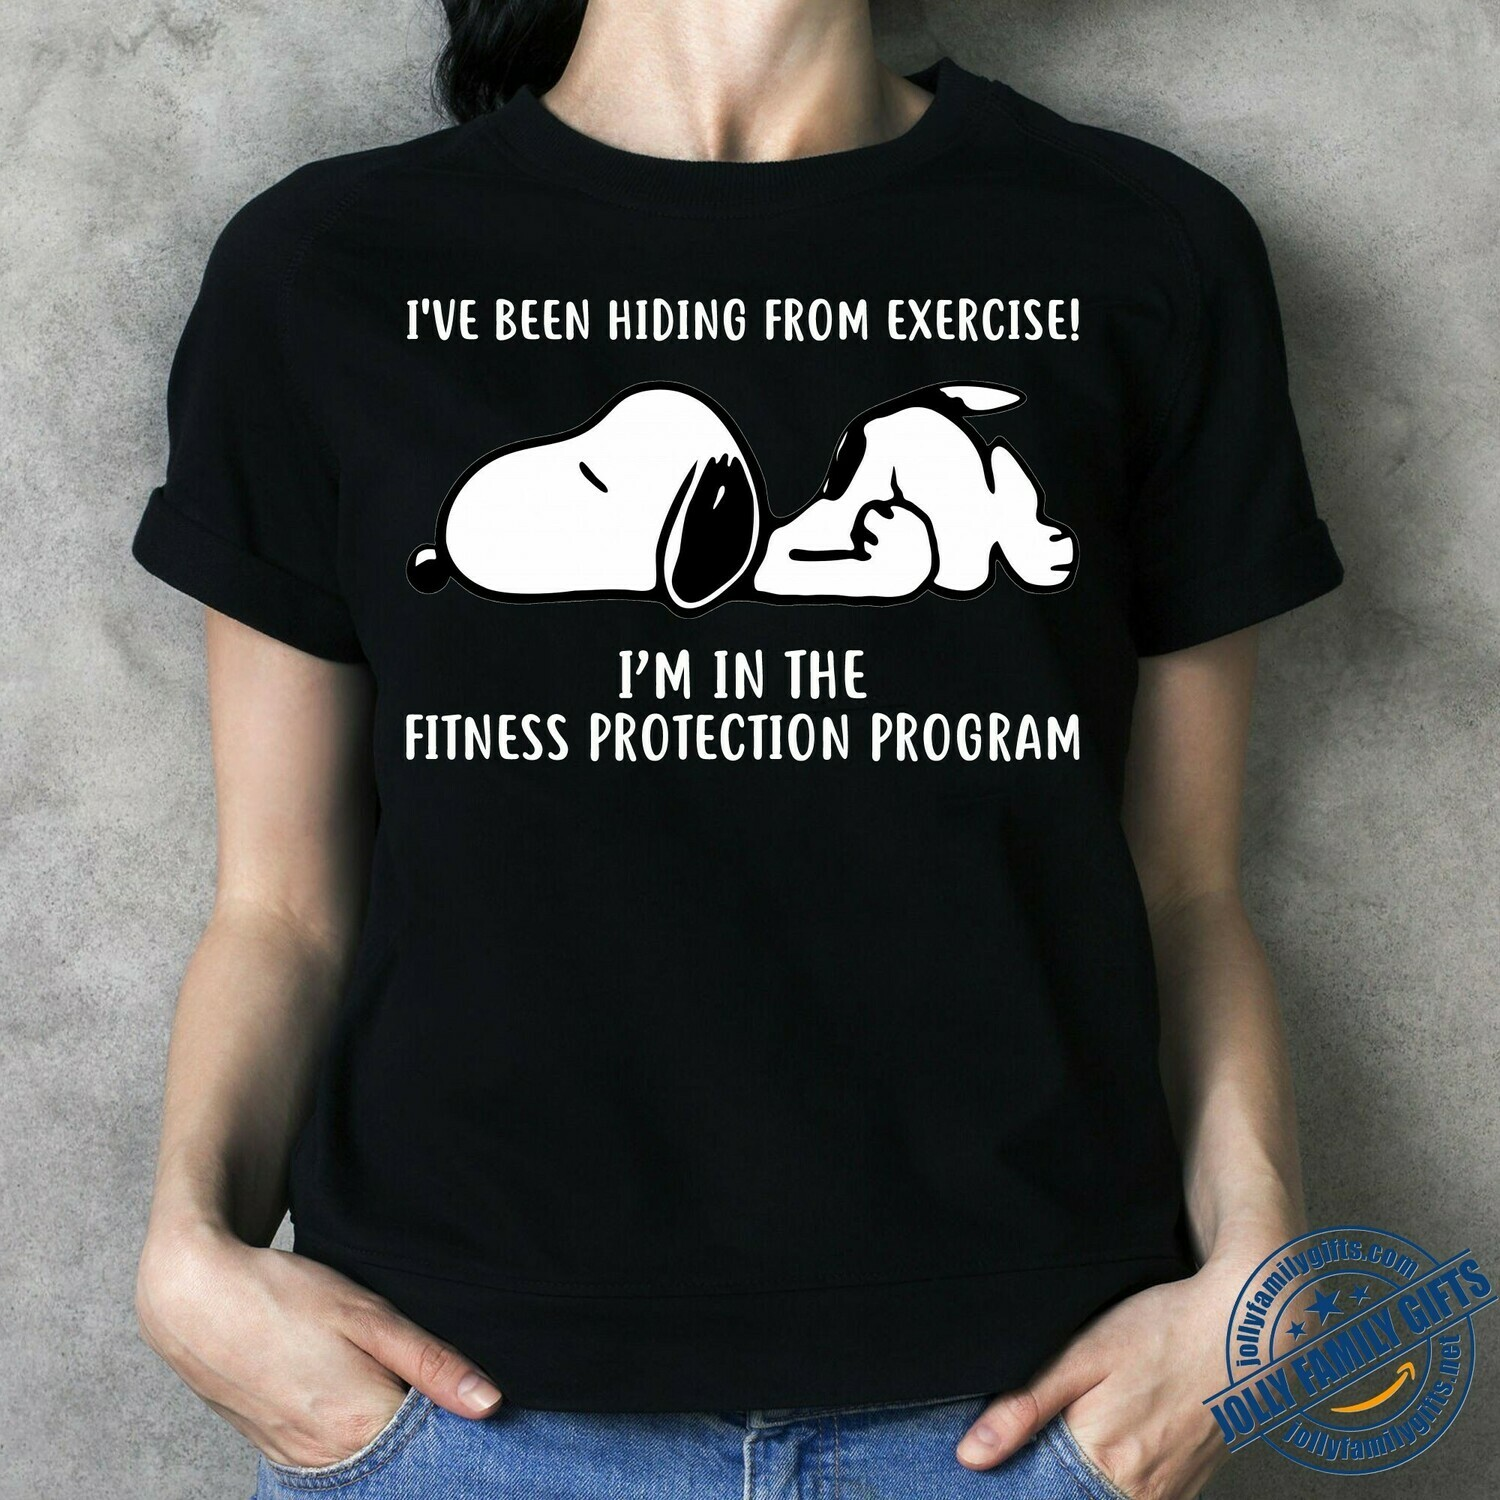 I've been hiding from exercise I'm in the fitness protection program Funny Snoopy  Unisex T-Shirt Hoodie Sweatshirt Sweater Plus Size for Ladies Women Men Kids Youth Gifts Tee Jolly Family Gifts